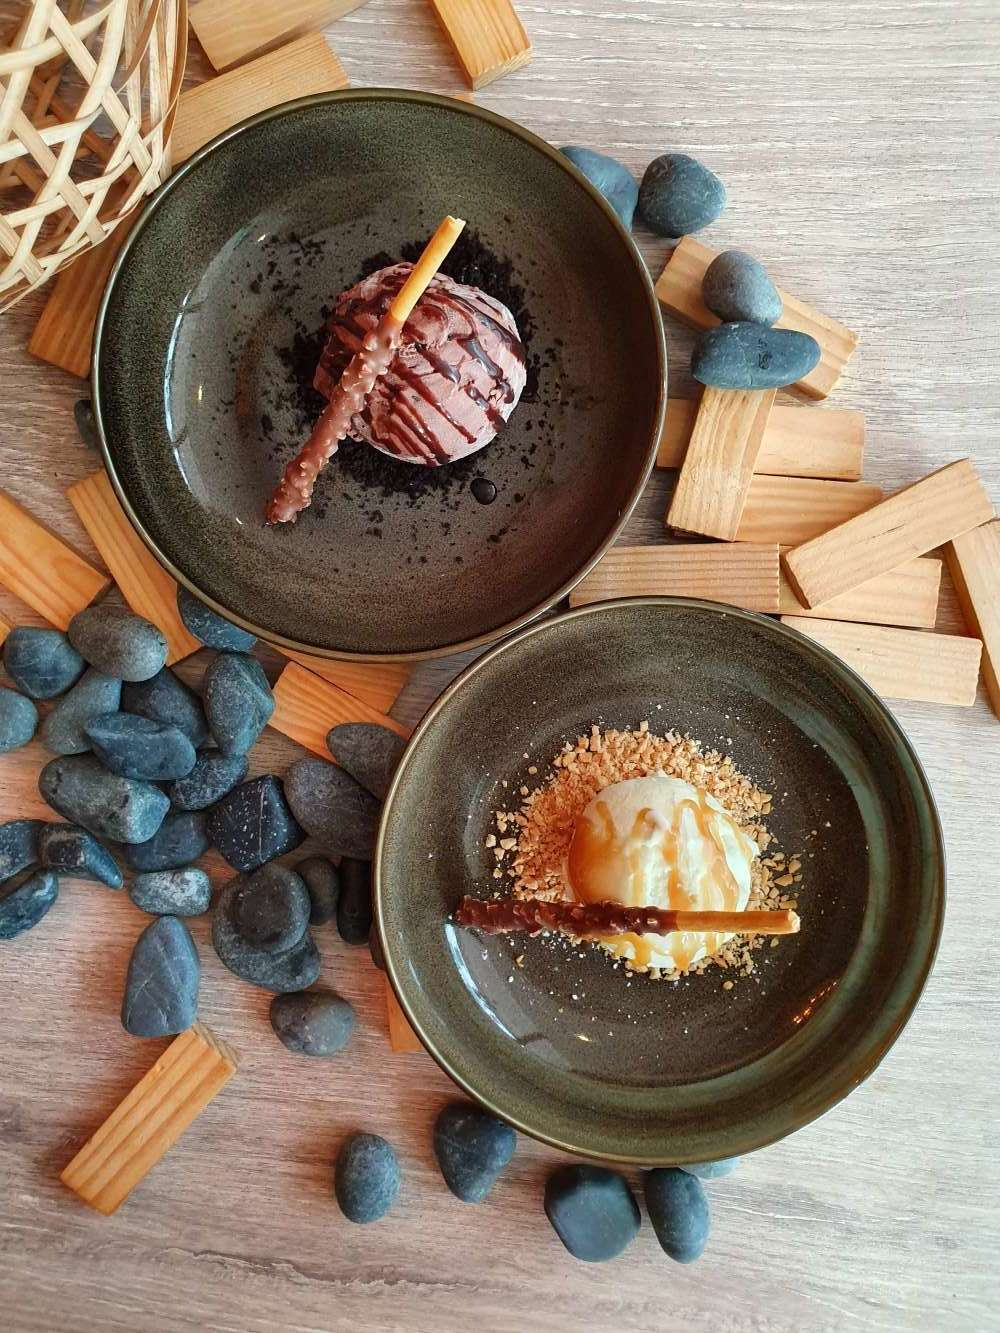 FREE GELATO DESSERT - We want you to enjoy your meal so dessert's on us this time!